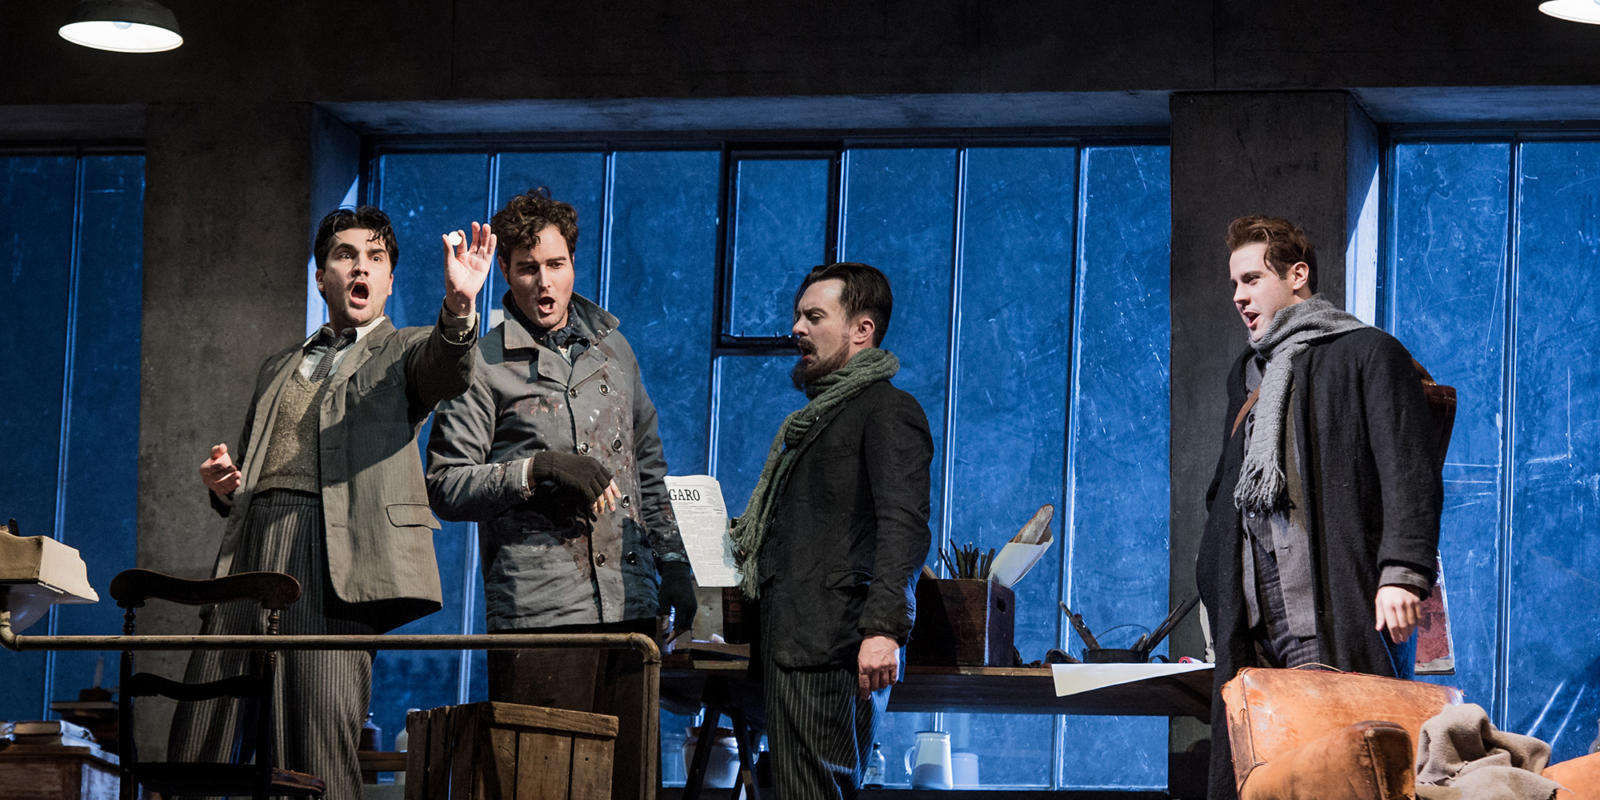 Bozidar Smiljanic (far right) in Jonathan Miller's 2018/19 production of Puccini's La bohème.